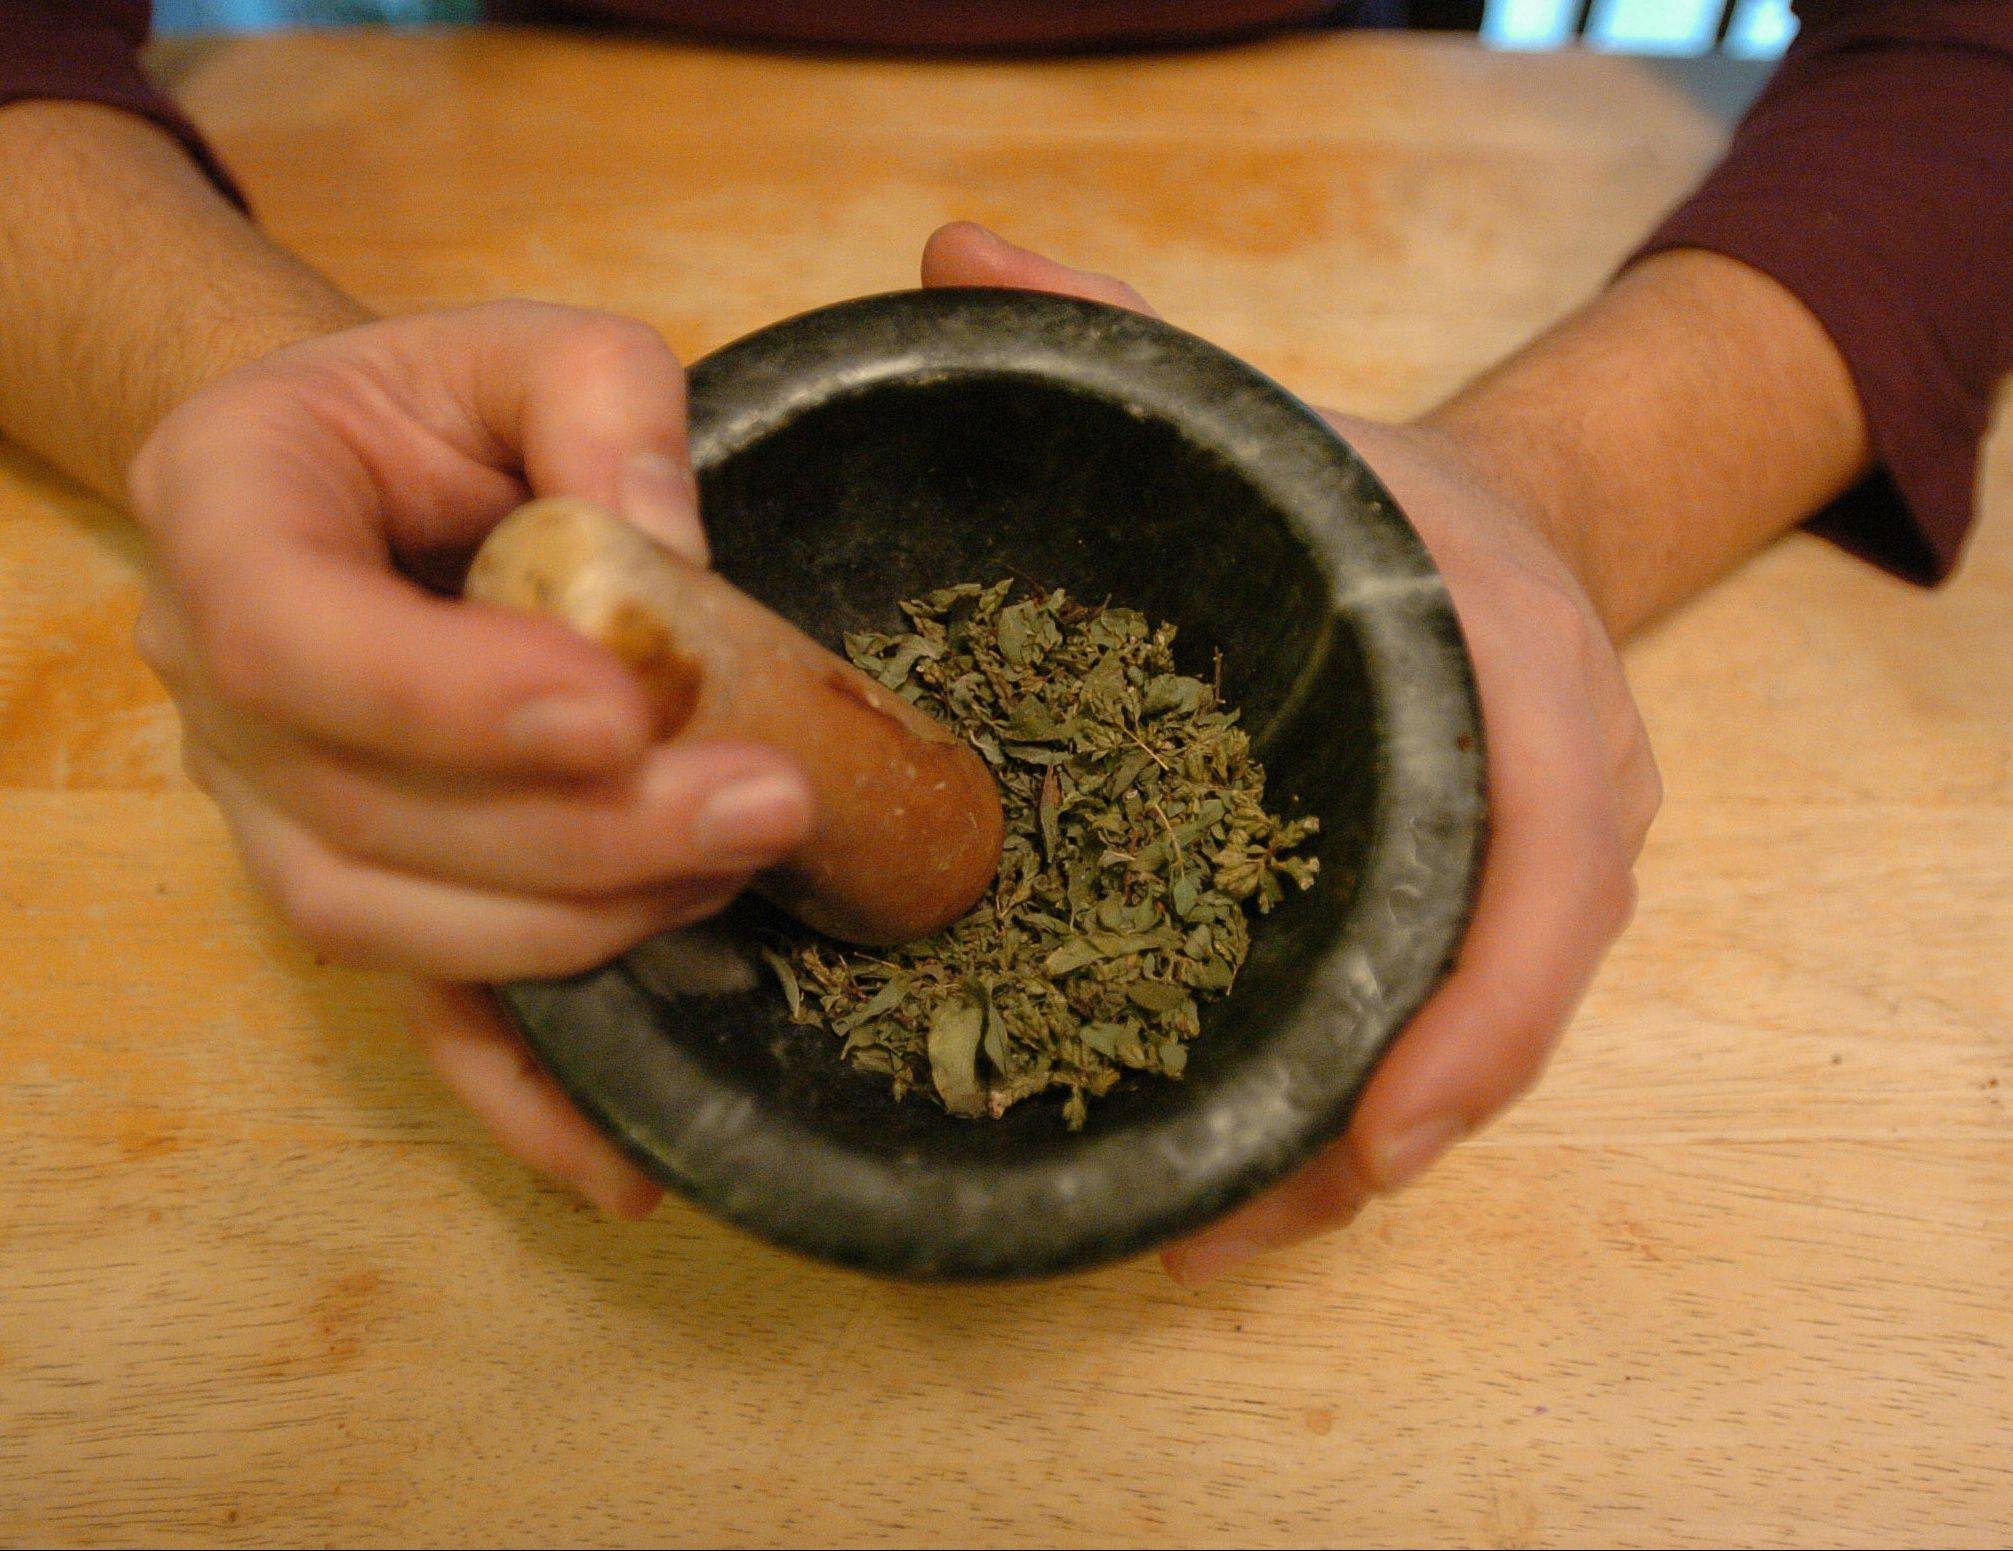 Cote Garceau-Saez grinds herbs for a tea mix she uses as a home remedy.